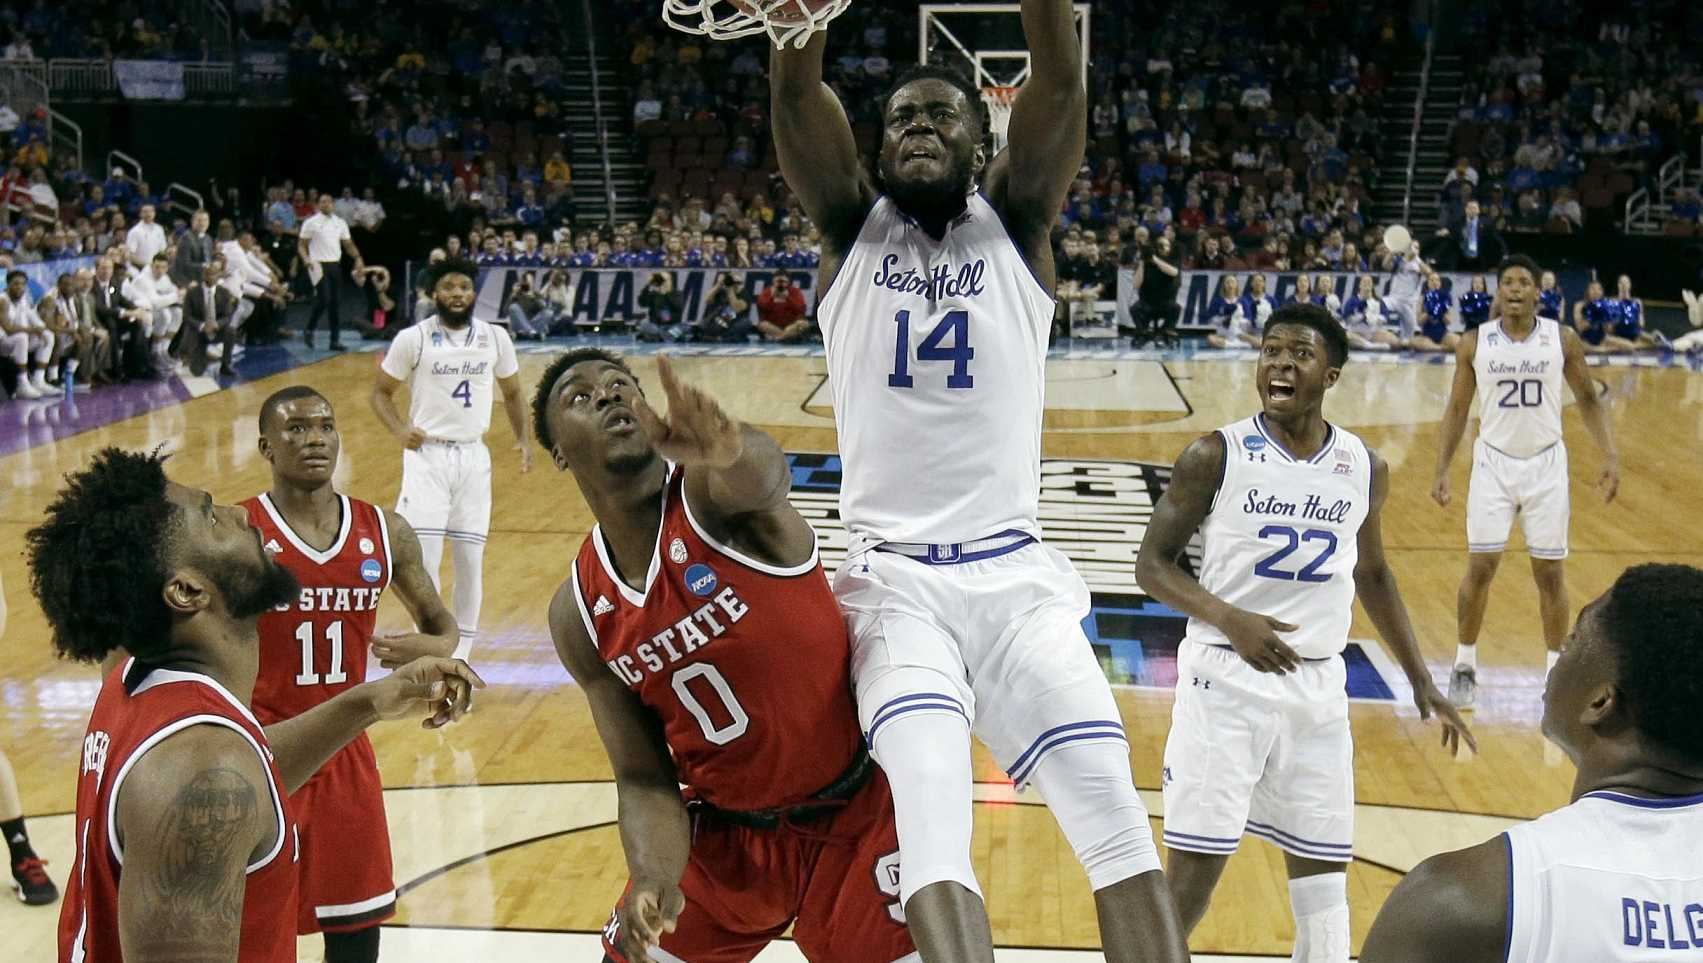 Seton Hall forward Ismael Sanogo (14) gets past North Carolina State forward Abdul-Malik Abu (0) to dunk the ball during the first half of an NCAA college basketball tournament first-round game Thursday, March 15, 2018, in Wichita, Kan.